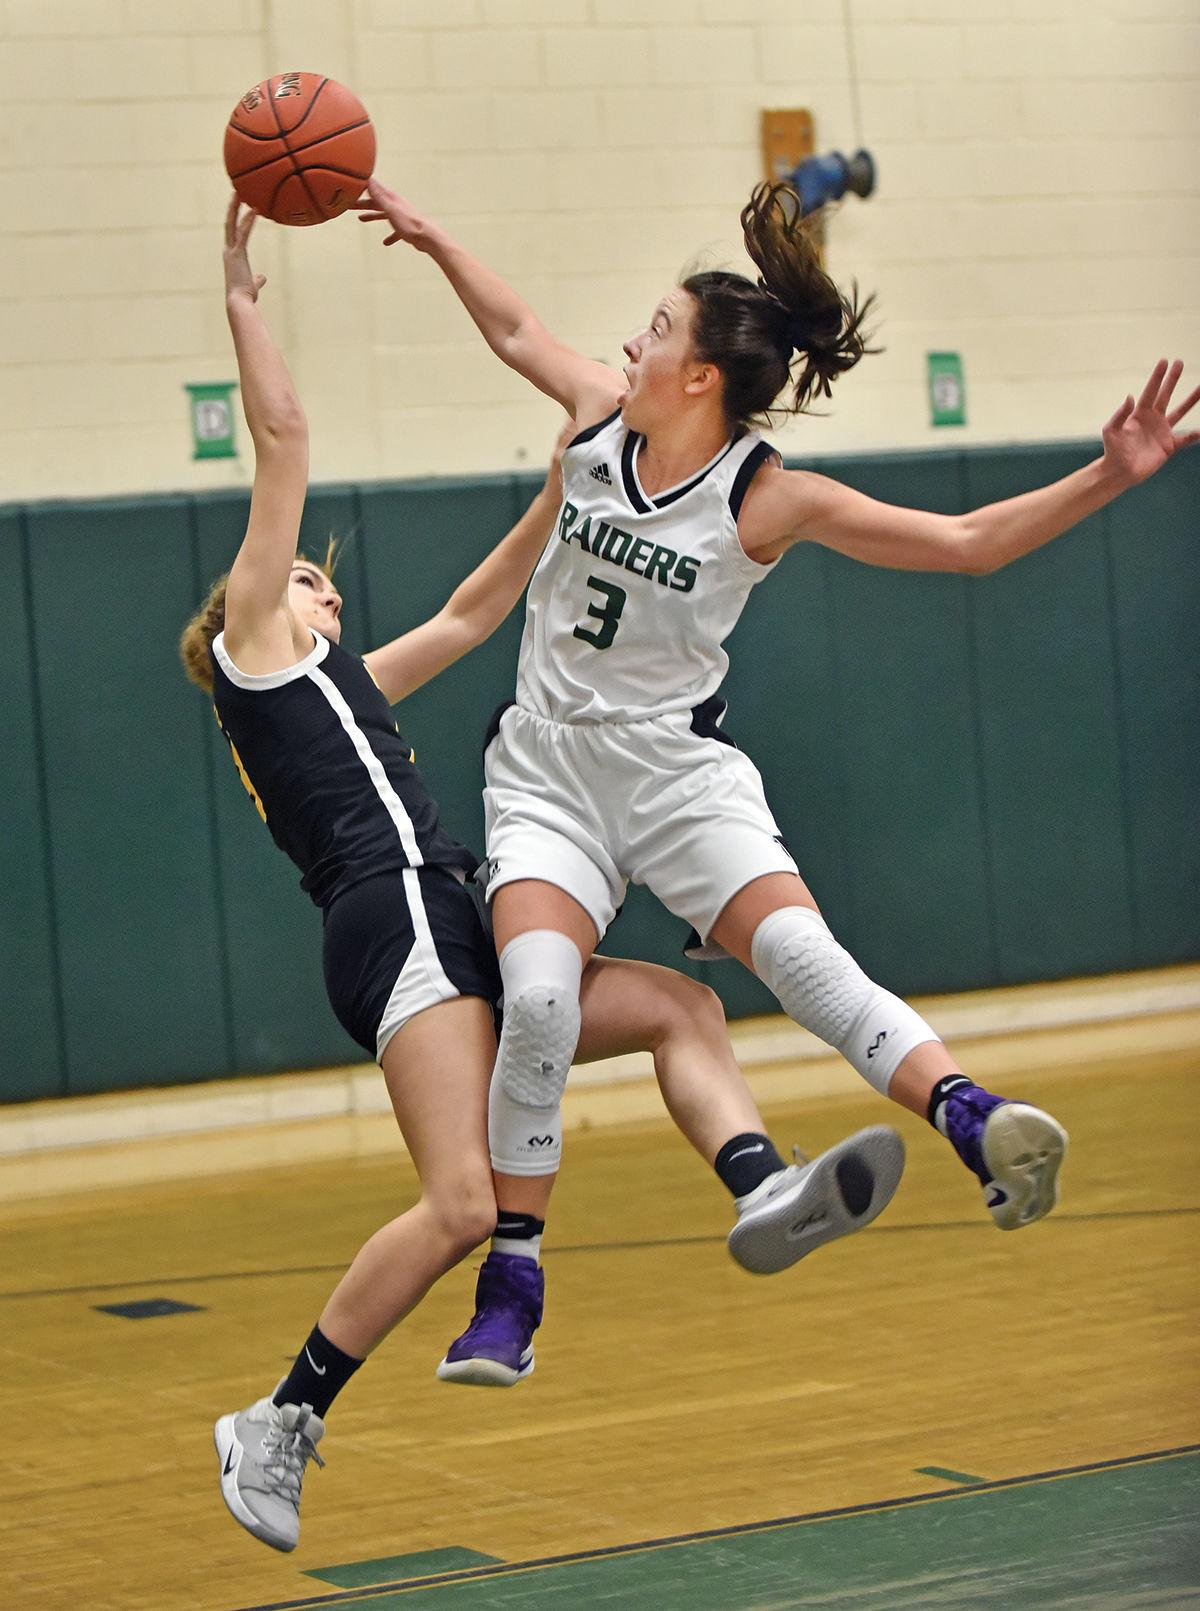 Stowe girls basketball: Abby Lehman